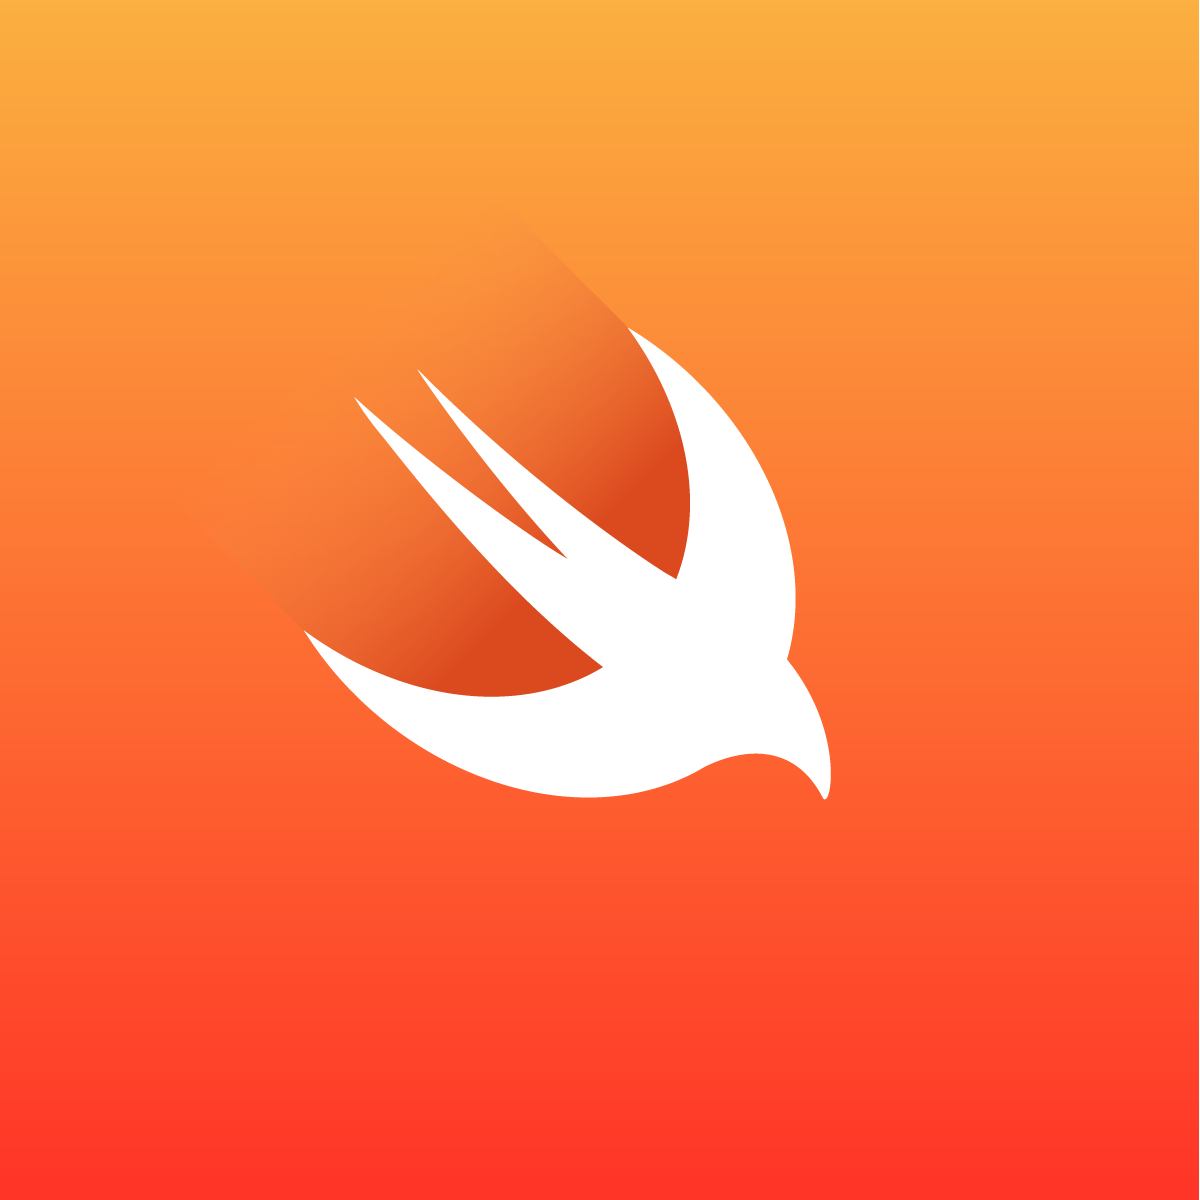 Learn Swift Louisville